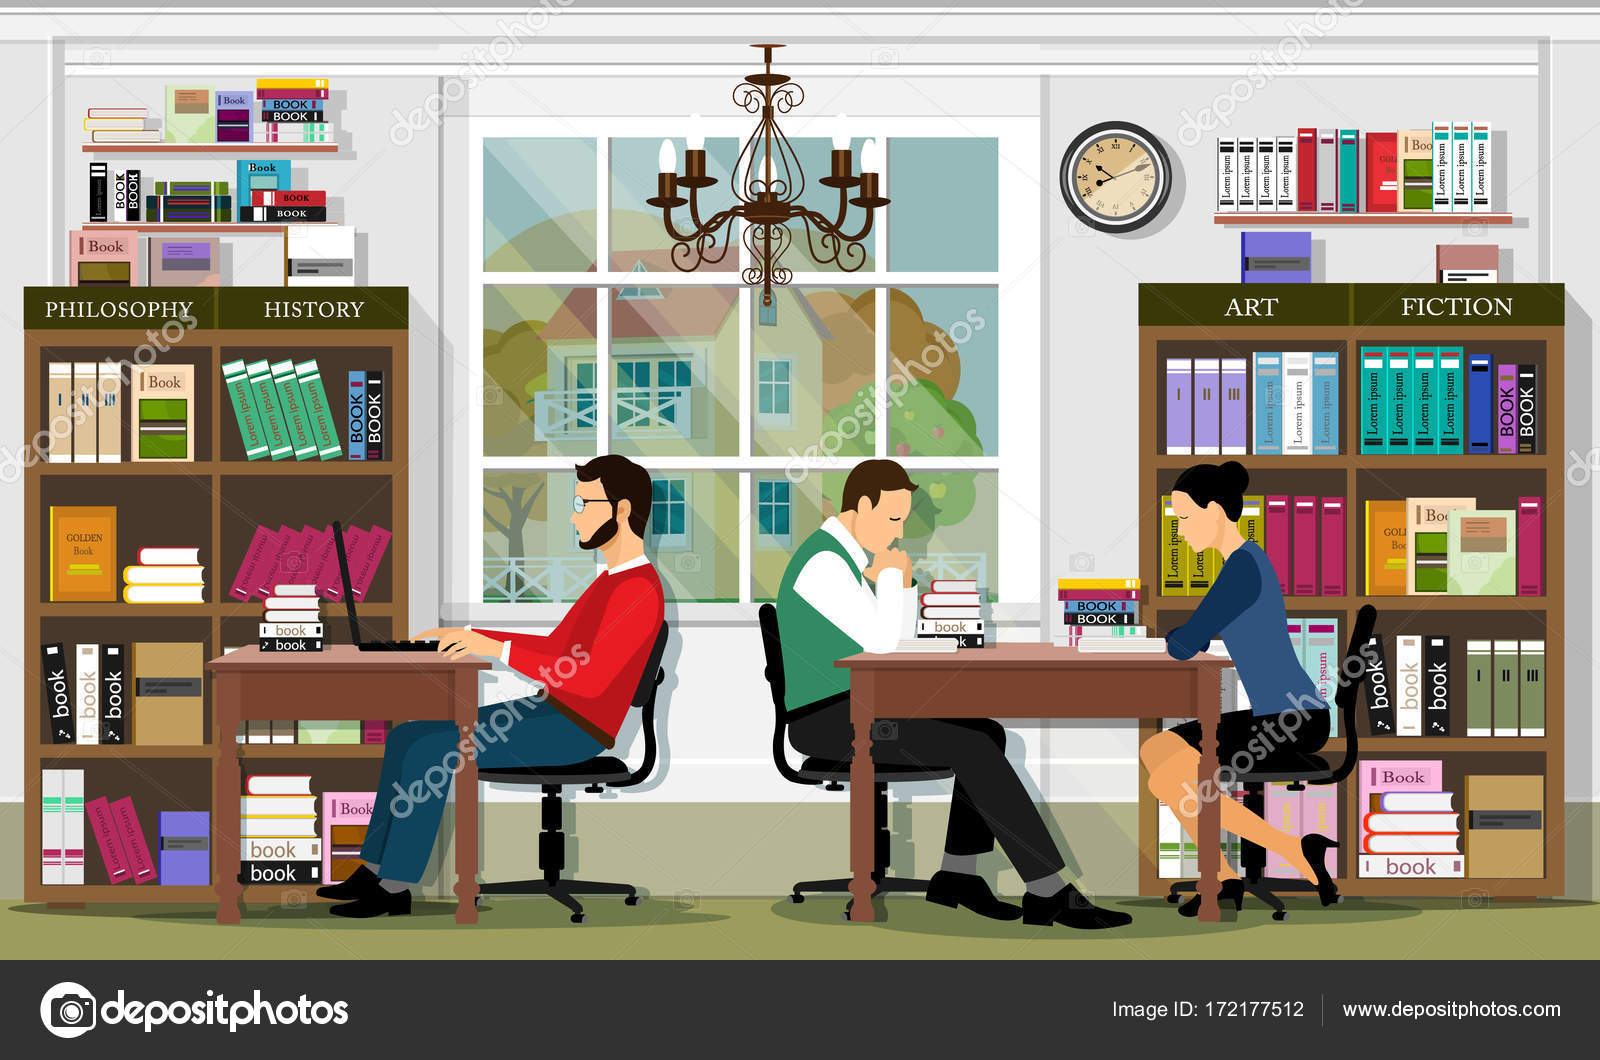 Stylish Graphic Library Interior With Furniture And People  # Muebles Fiction